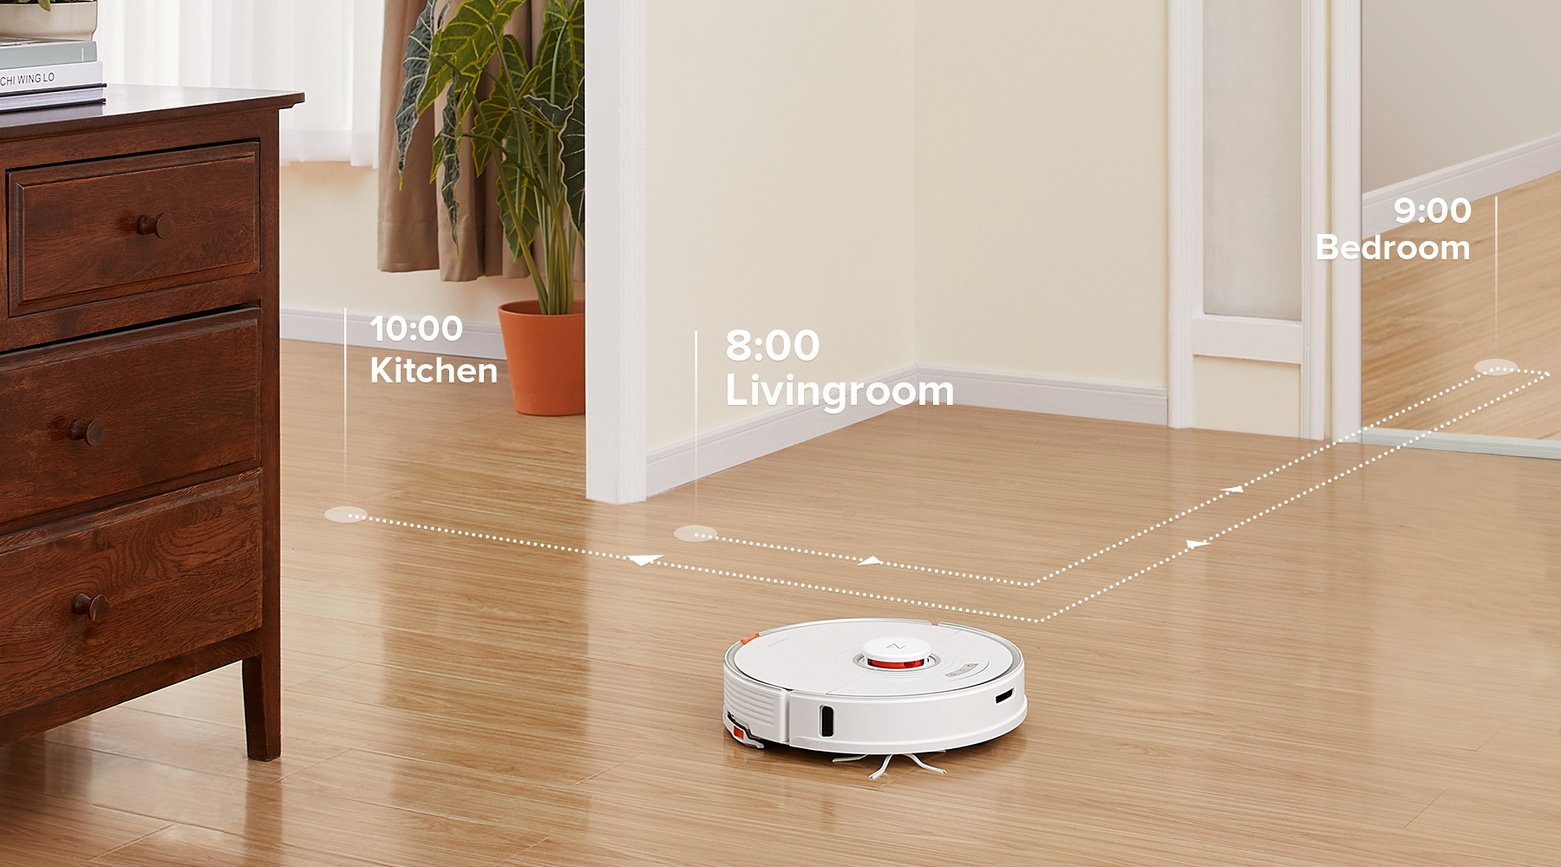 Set advanced scheduling to automate room cleaning